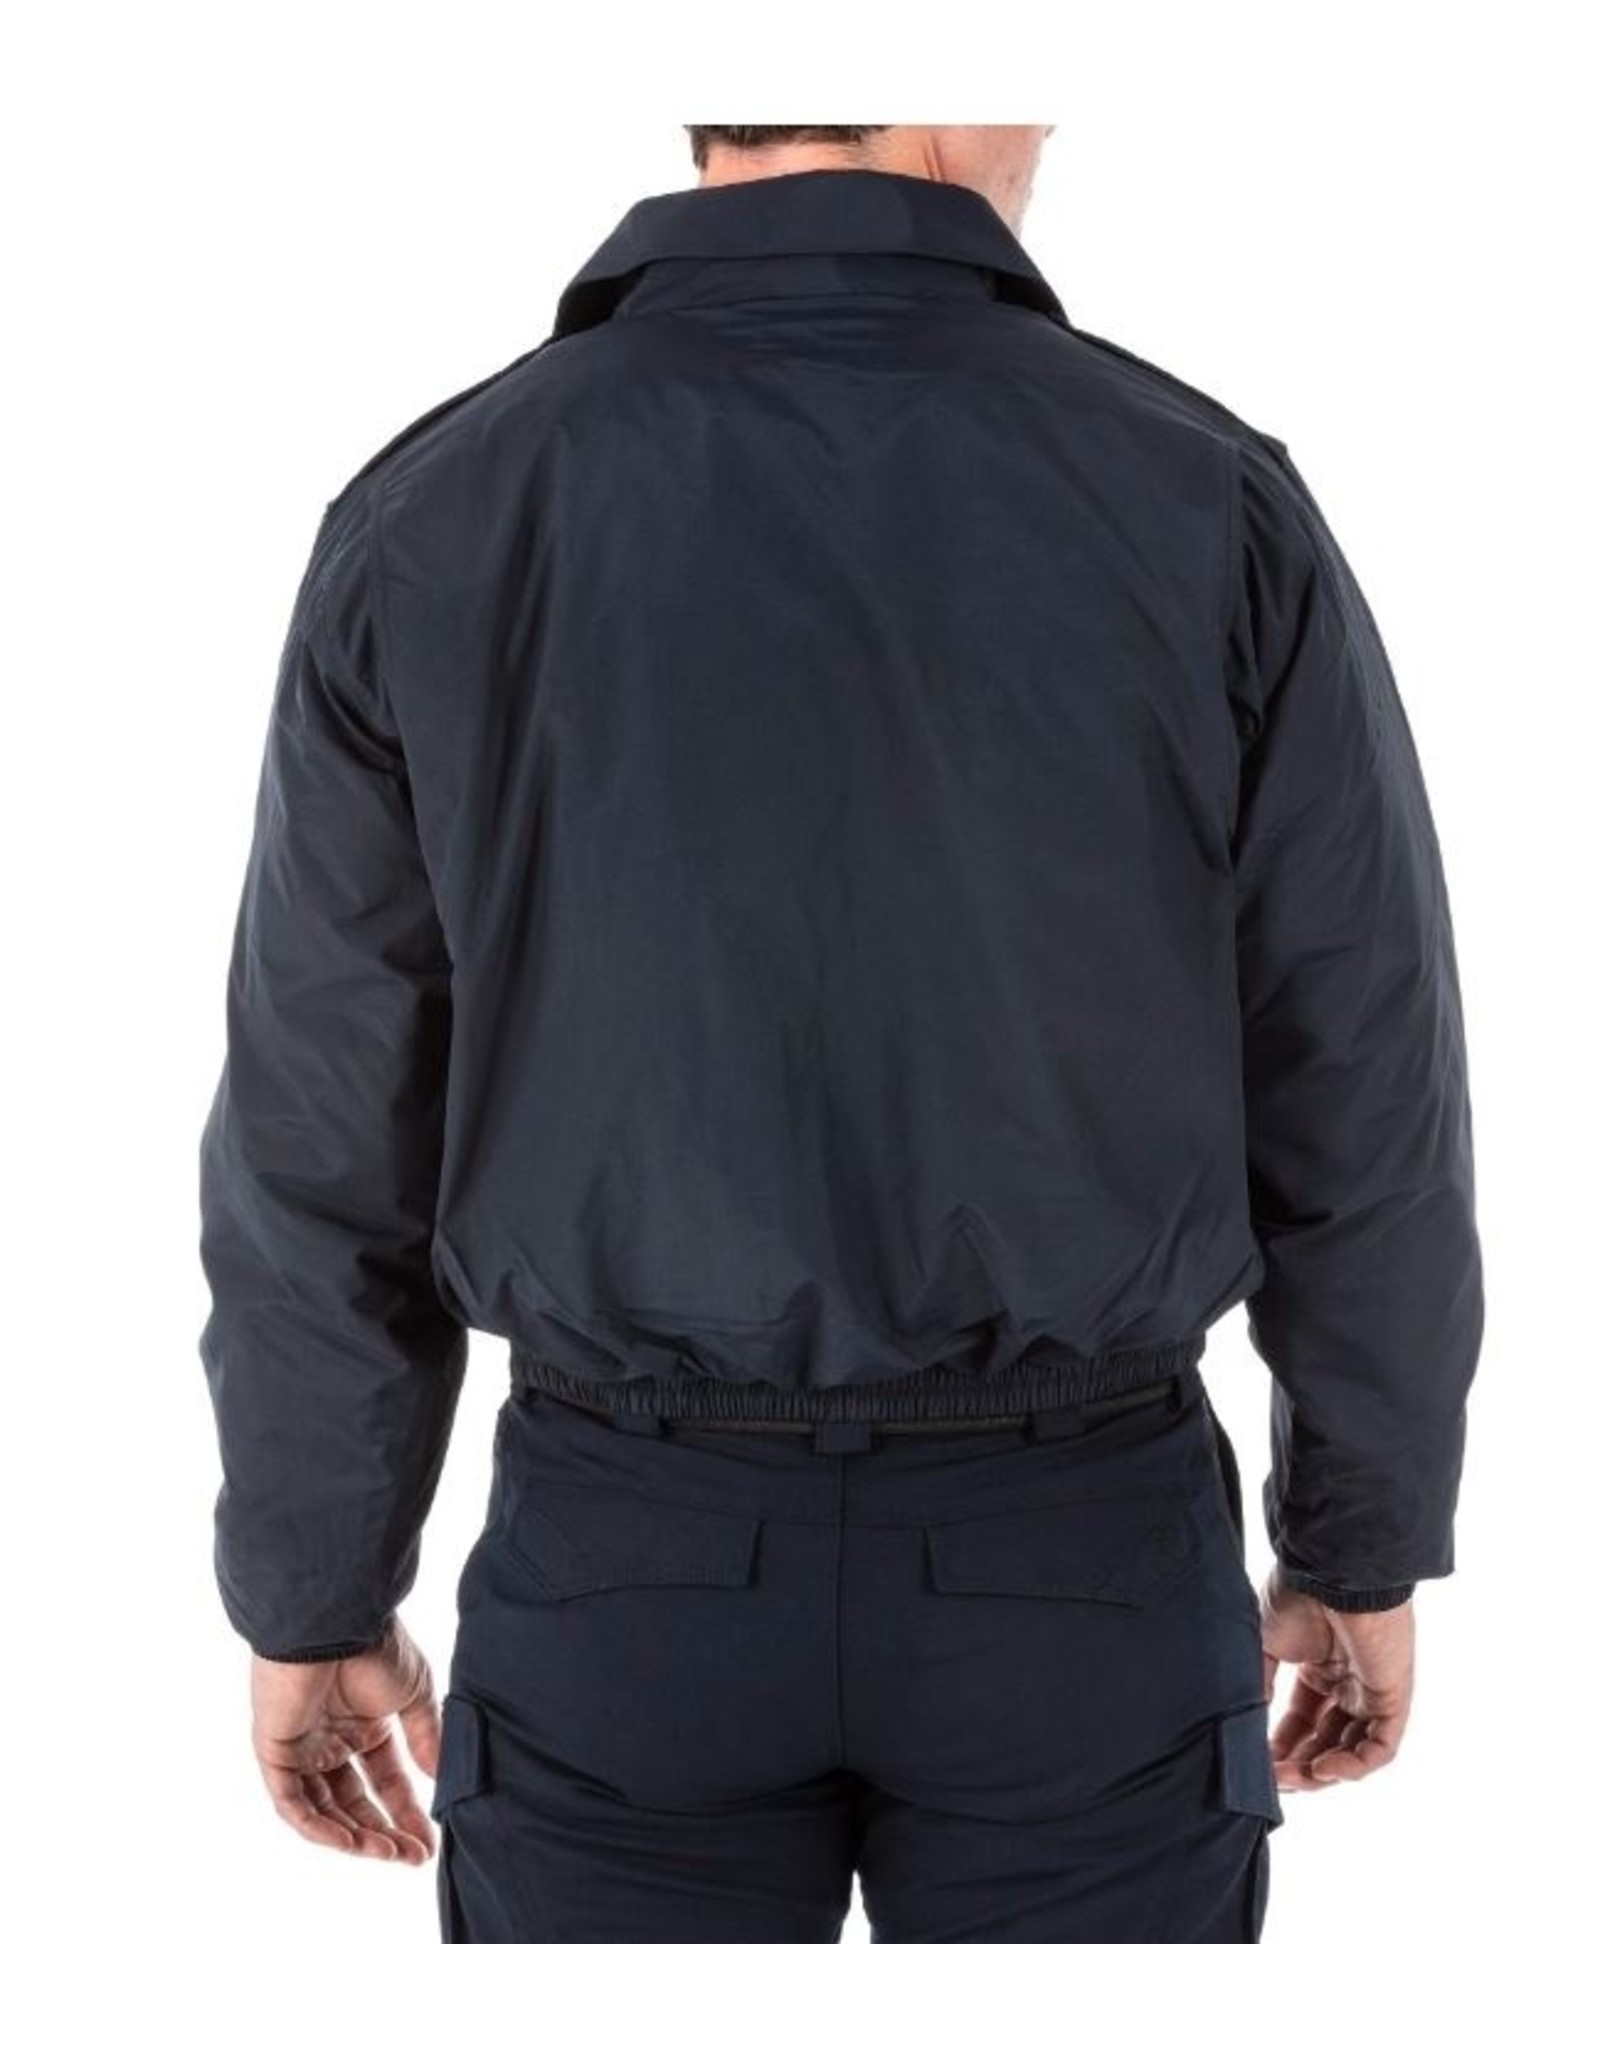 5.11 DOUBLE DUTY JACKET - ONLINE ONLY